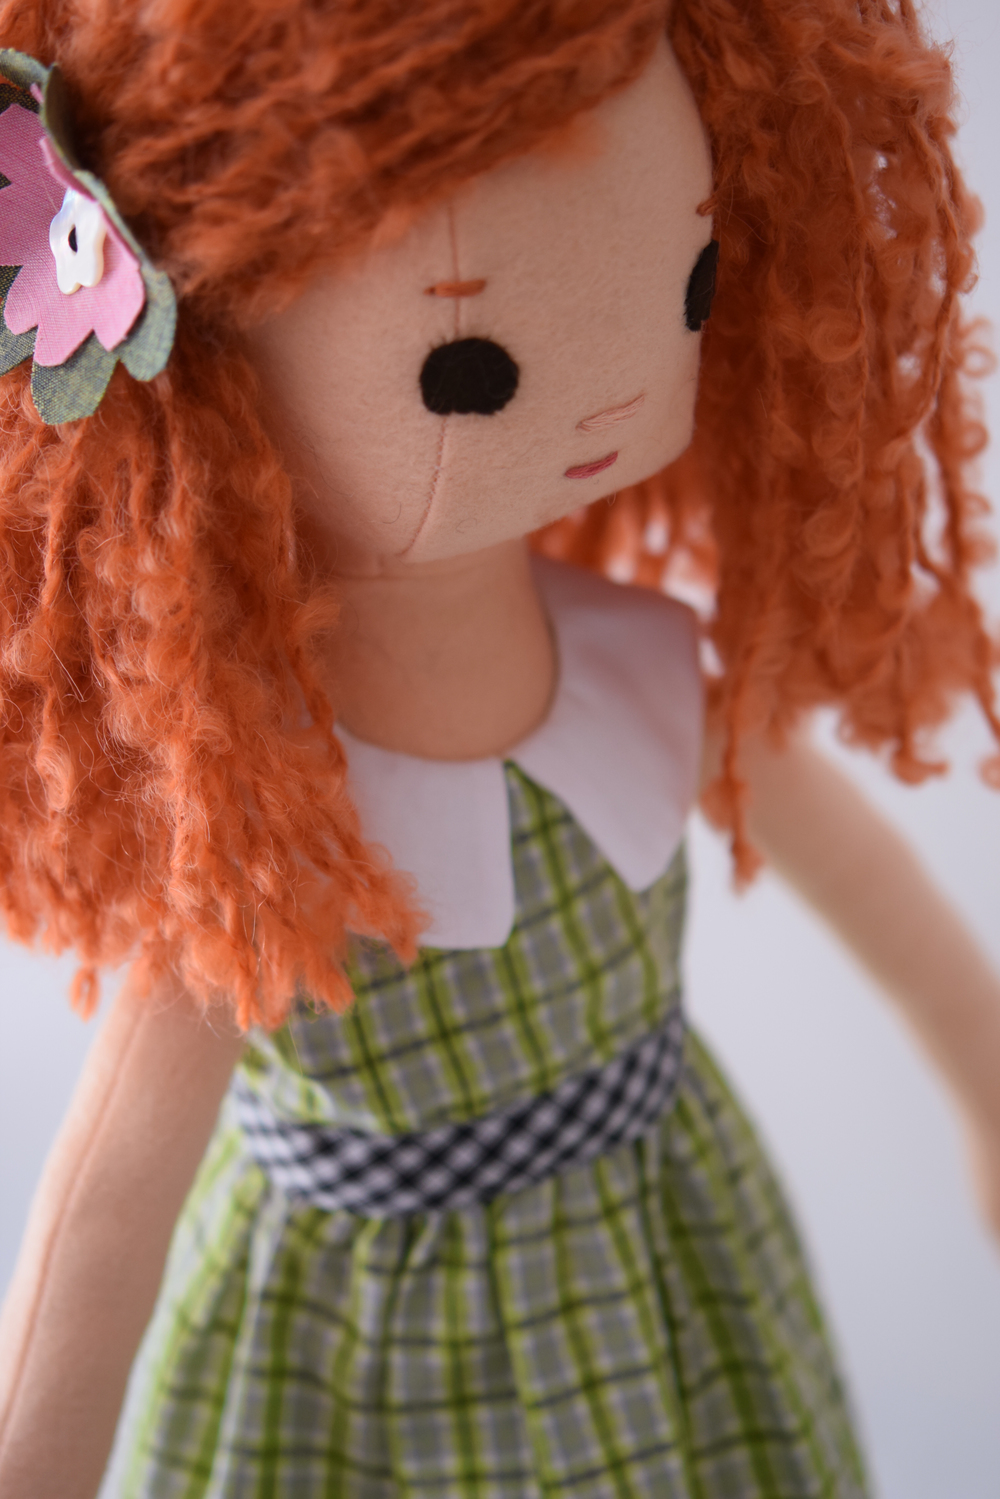 New Redhead Doll from Phoebe&Egg